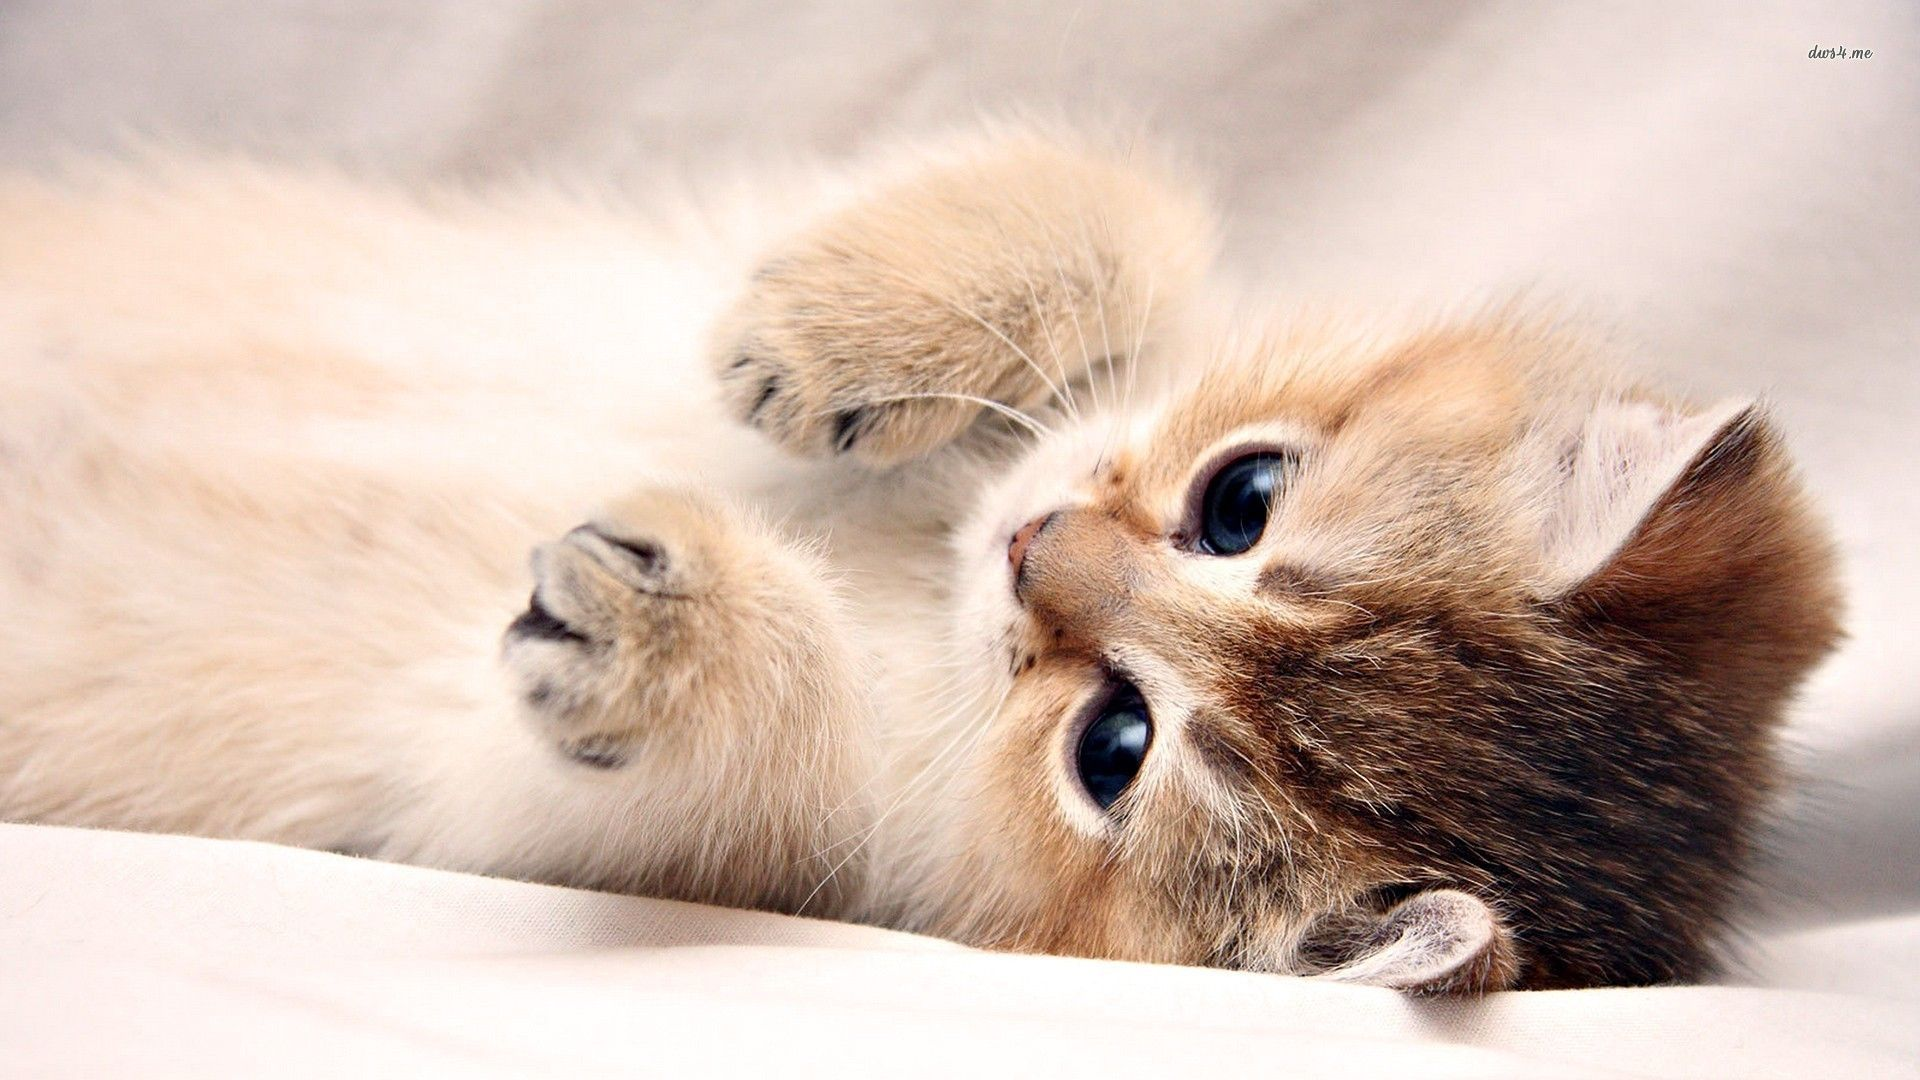 Kitten wallpaper 1280x800 Download Best HD Desktop